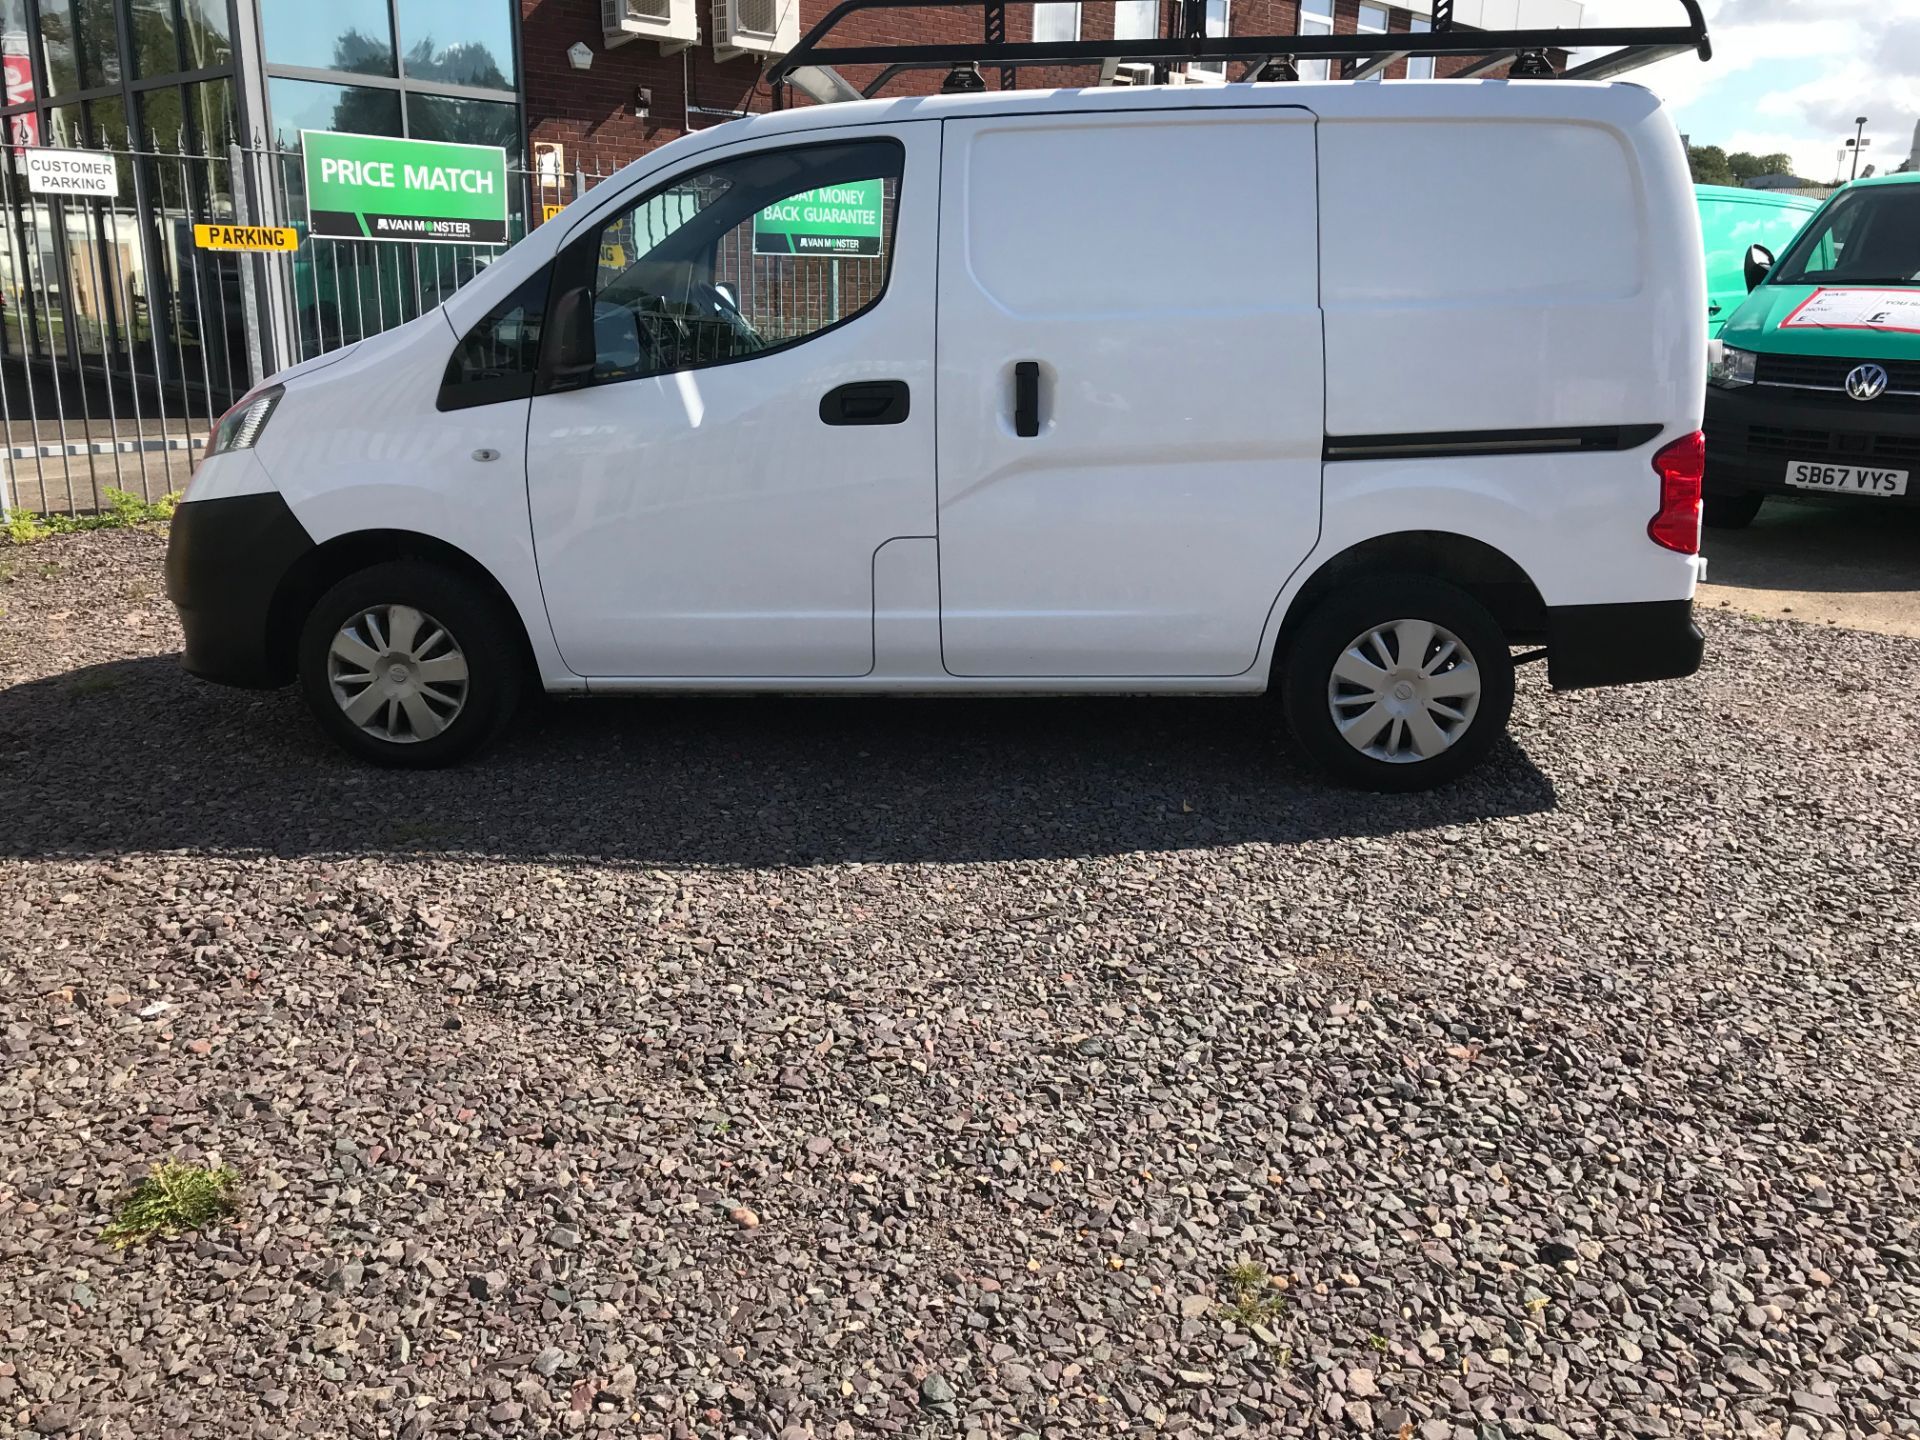 2016 Nissan Nv200 1.5 DCI ACCENTA EURO 5 (DL16HNM) Image 6